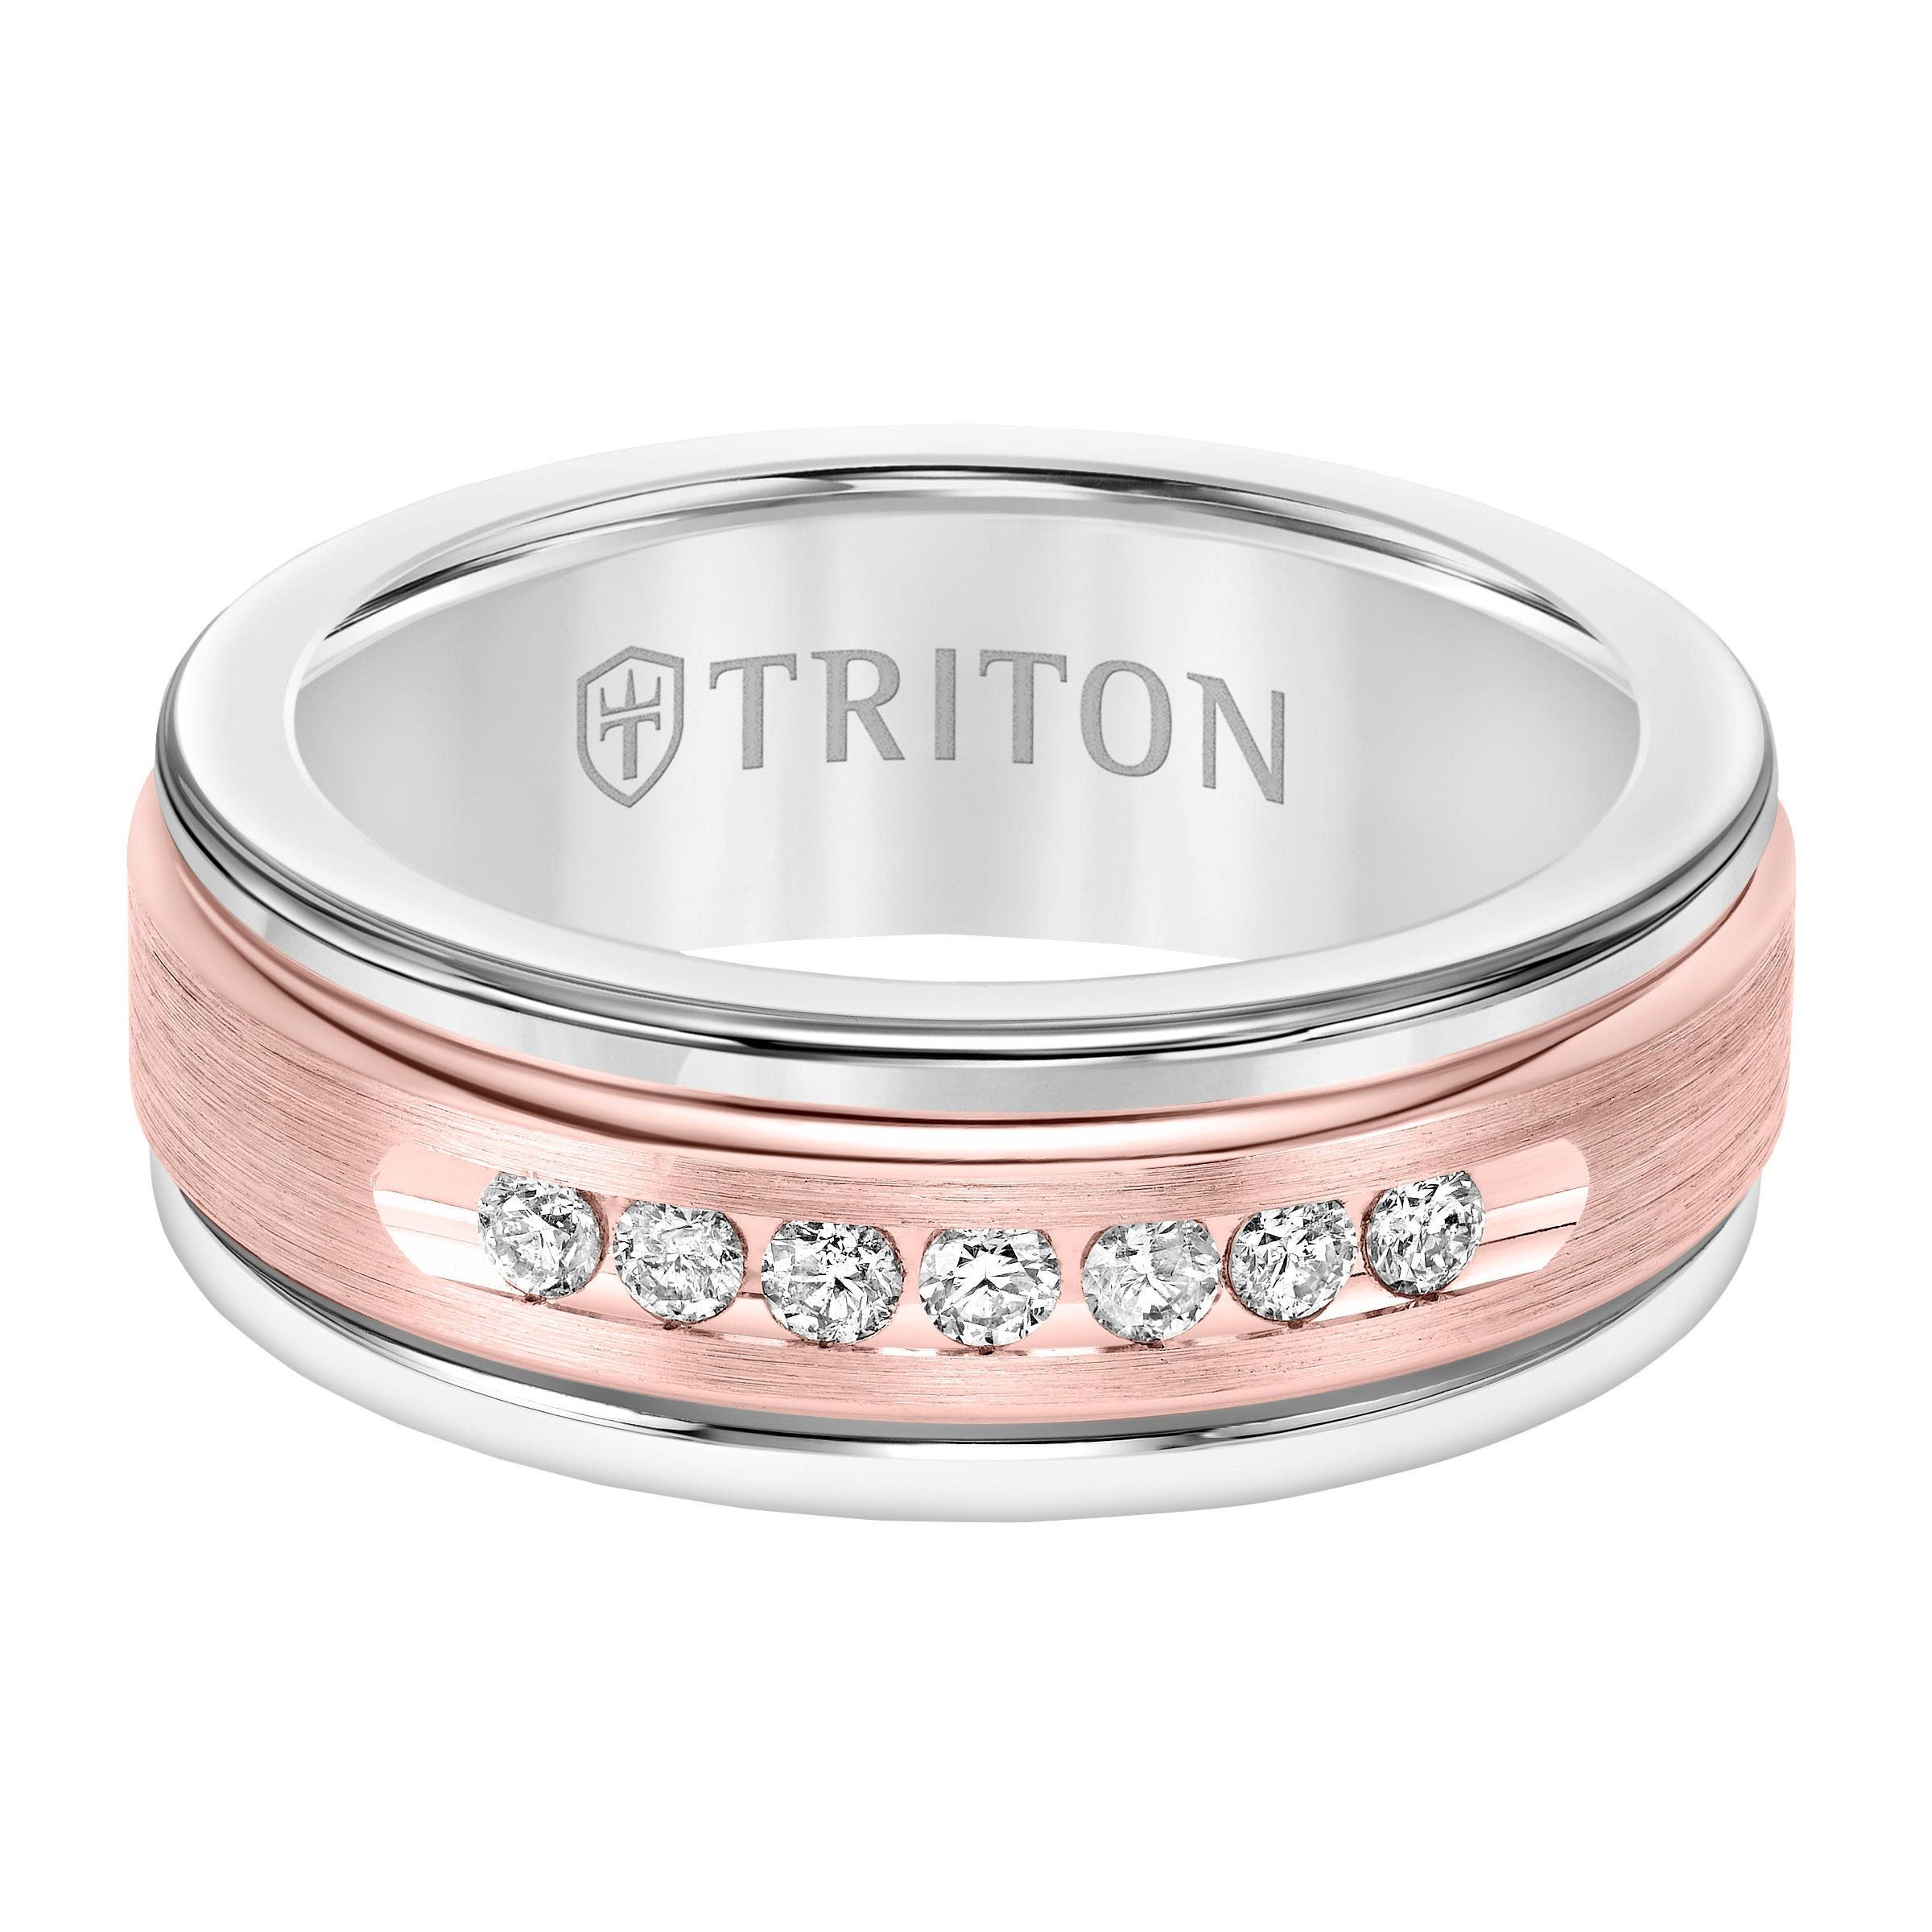 Triton Men's 8mm White Tungsten Carbide and Diamond Wedding Band with 14k Rose Gold Center